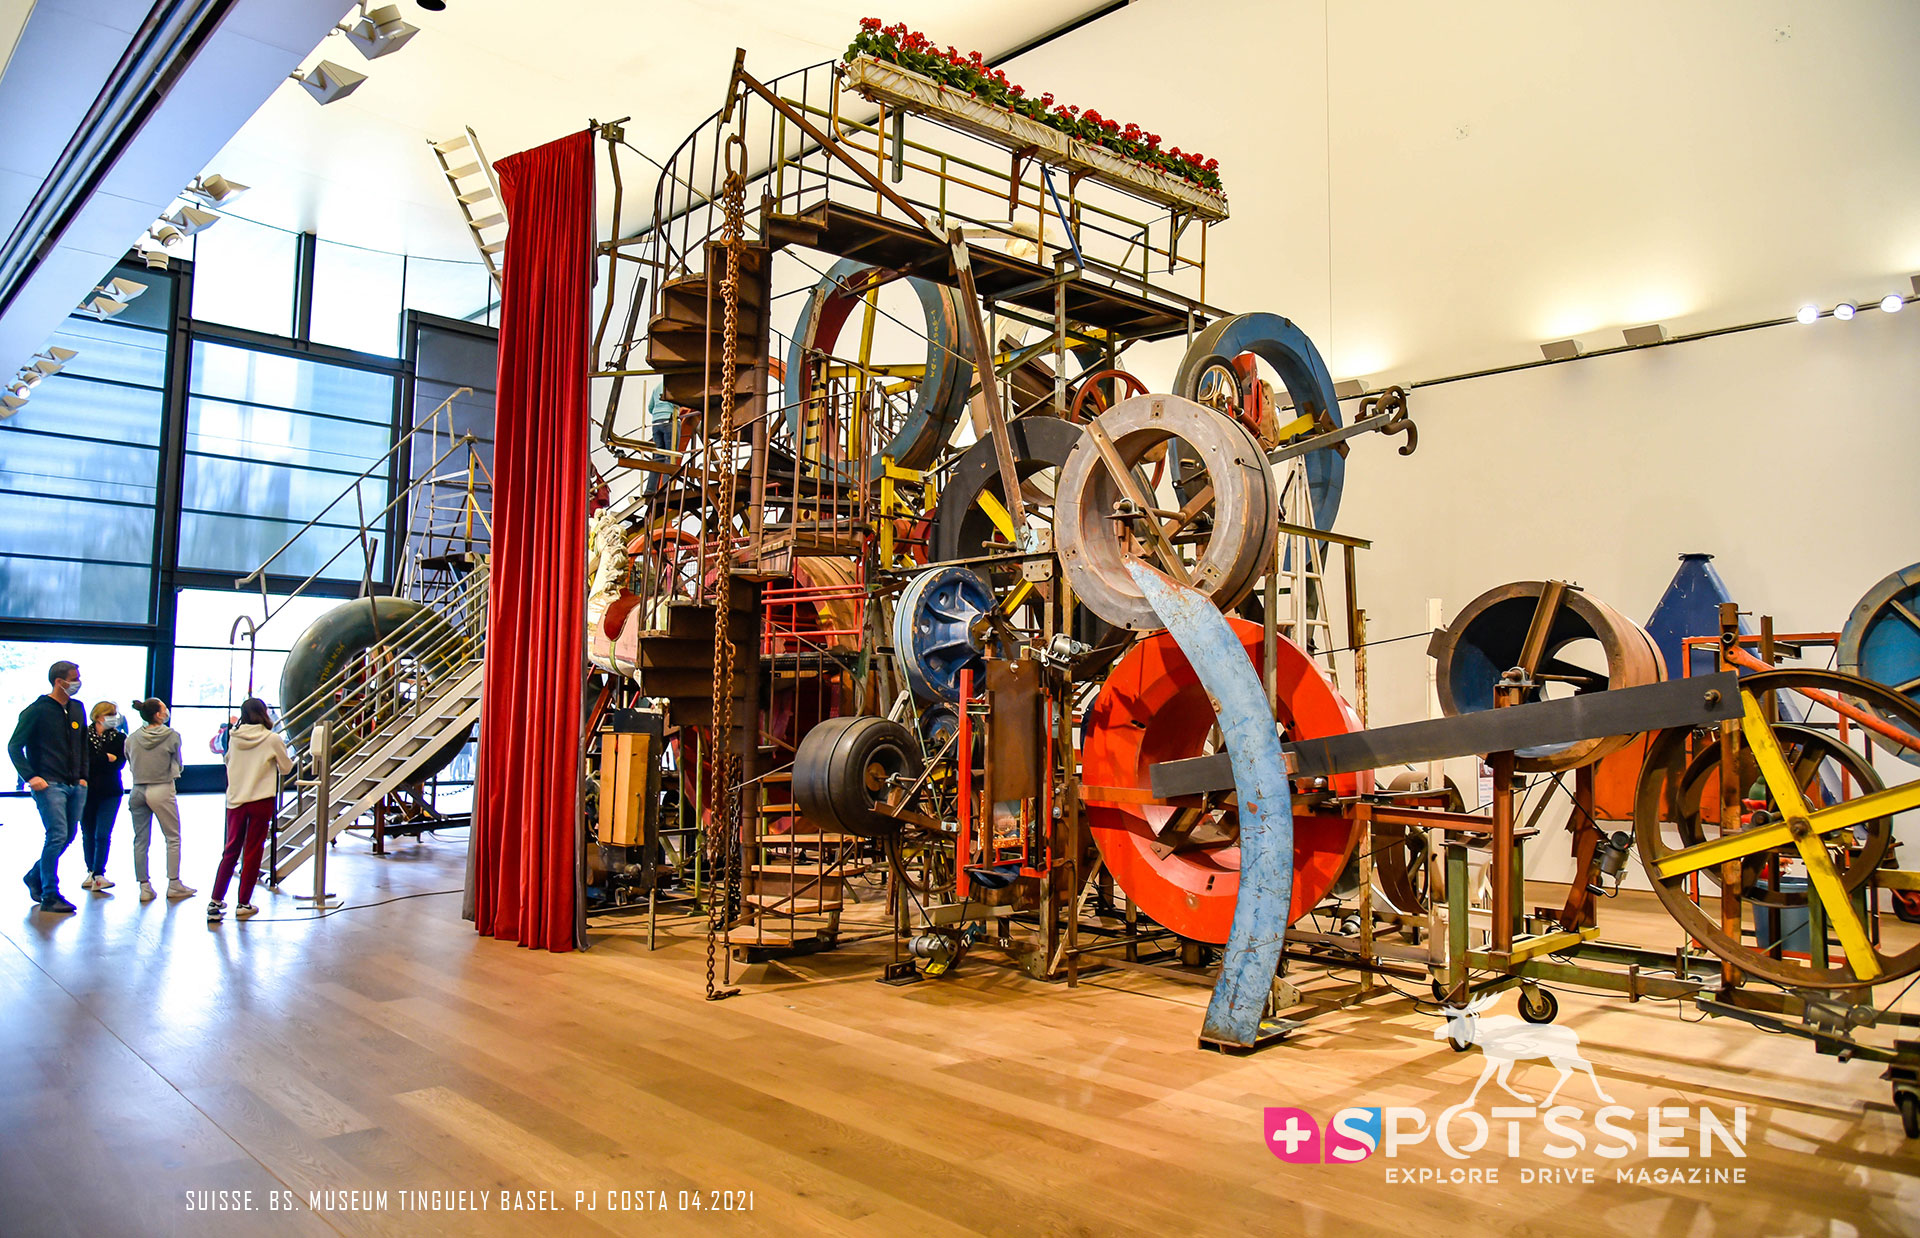 2021, museum, tinguely, basel